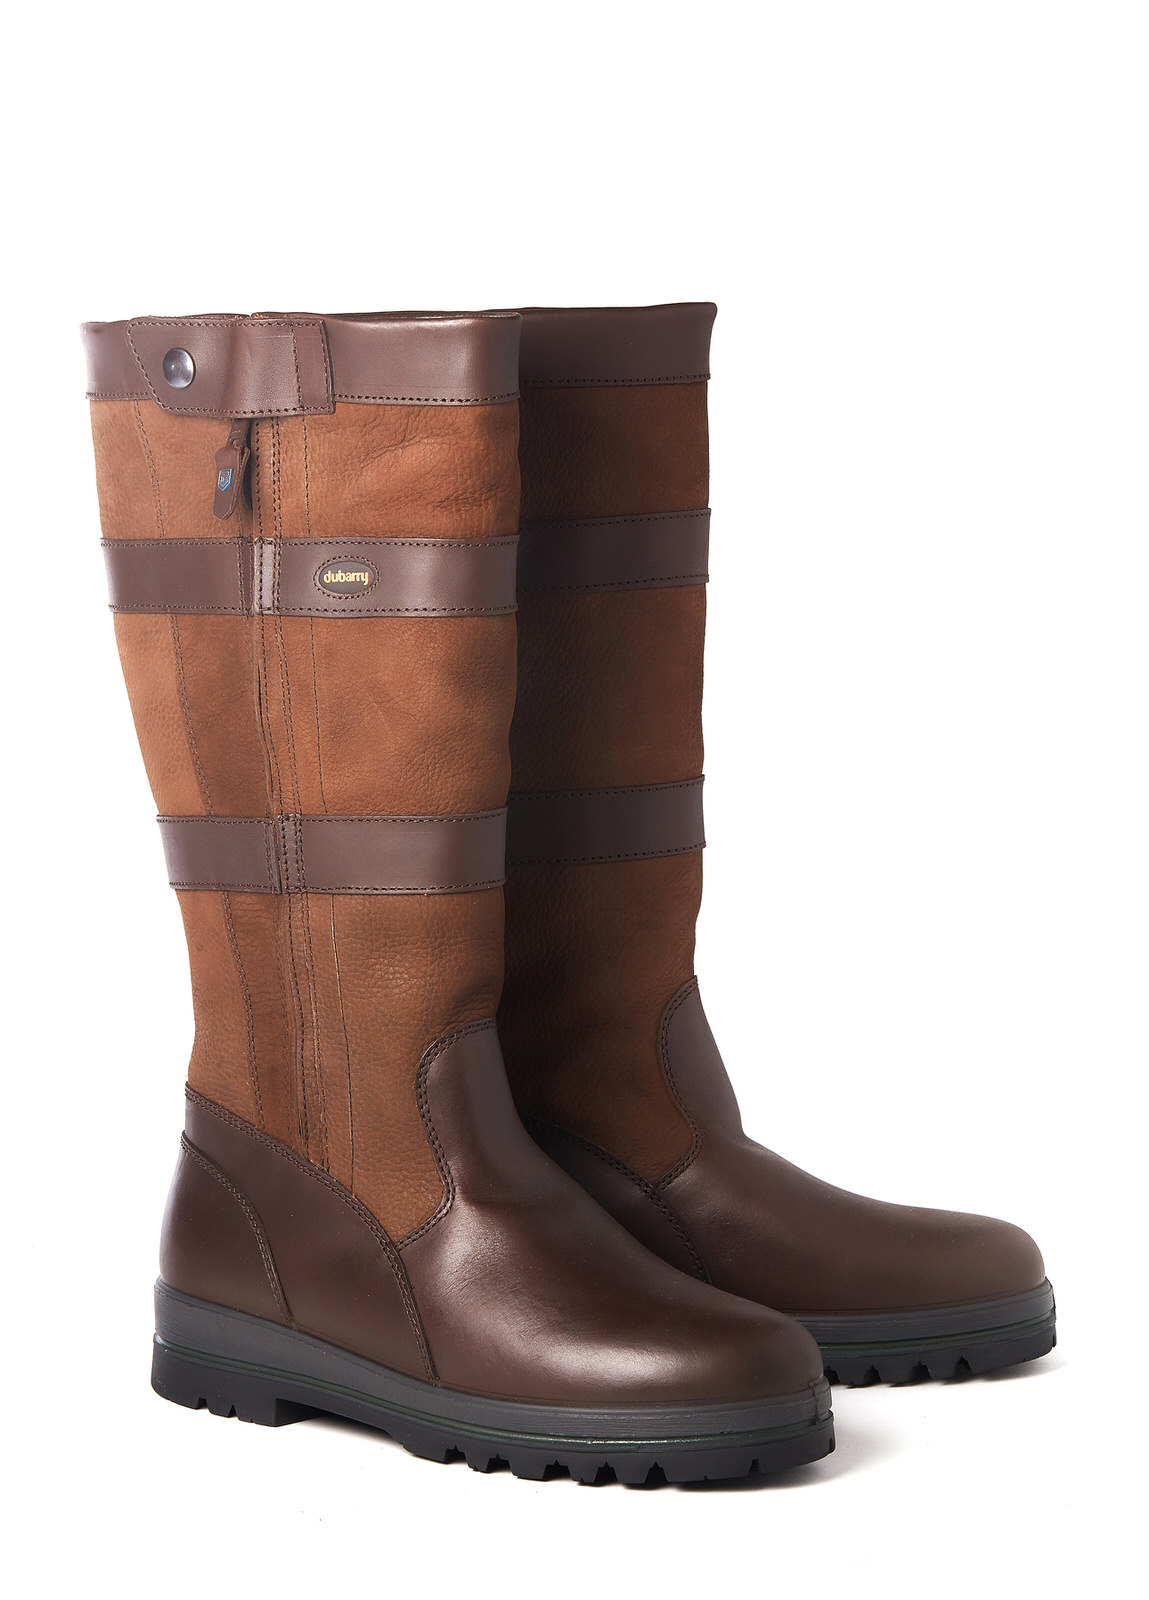 Wexford_Country_Boot_Walnut_Image_1